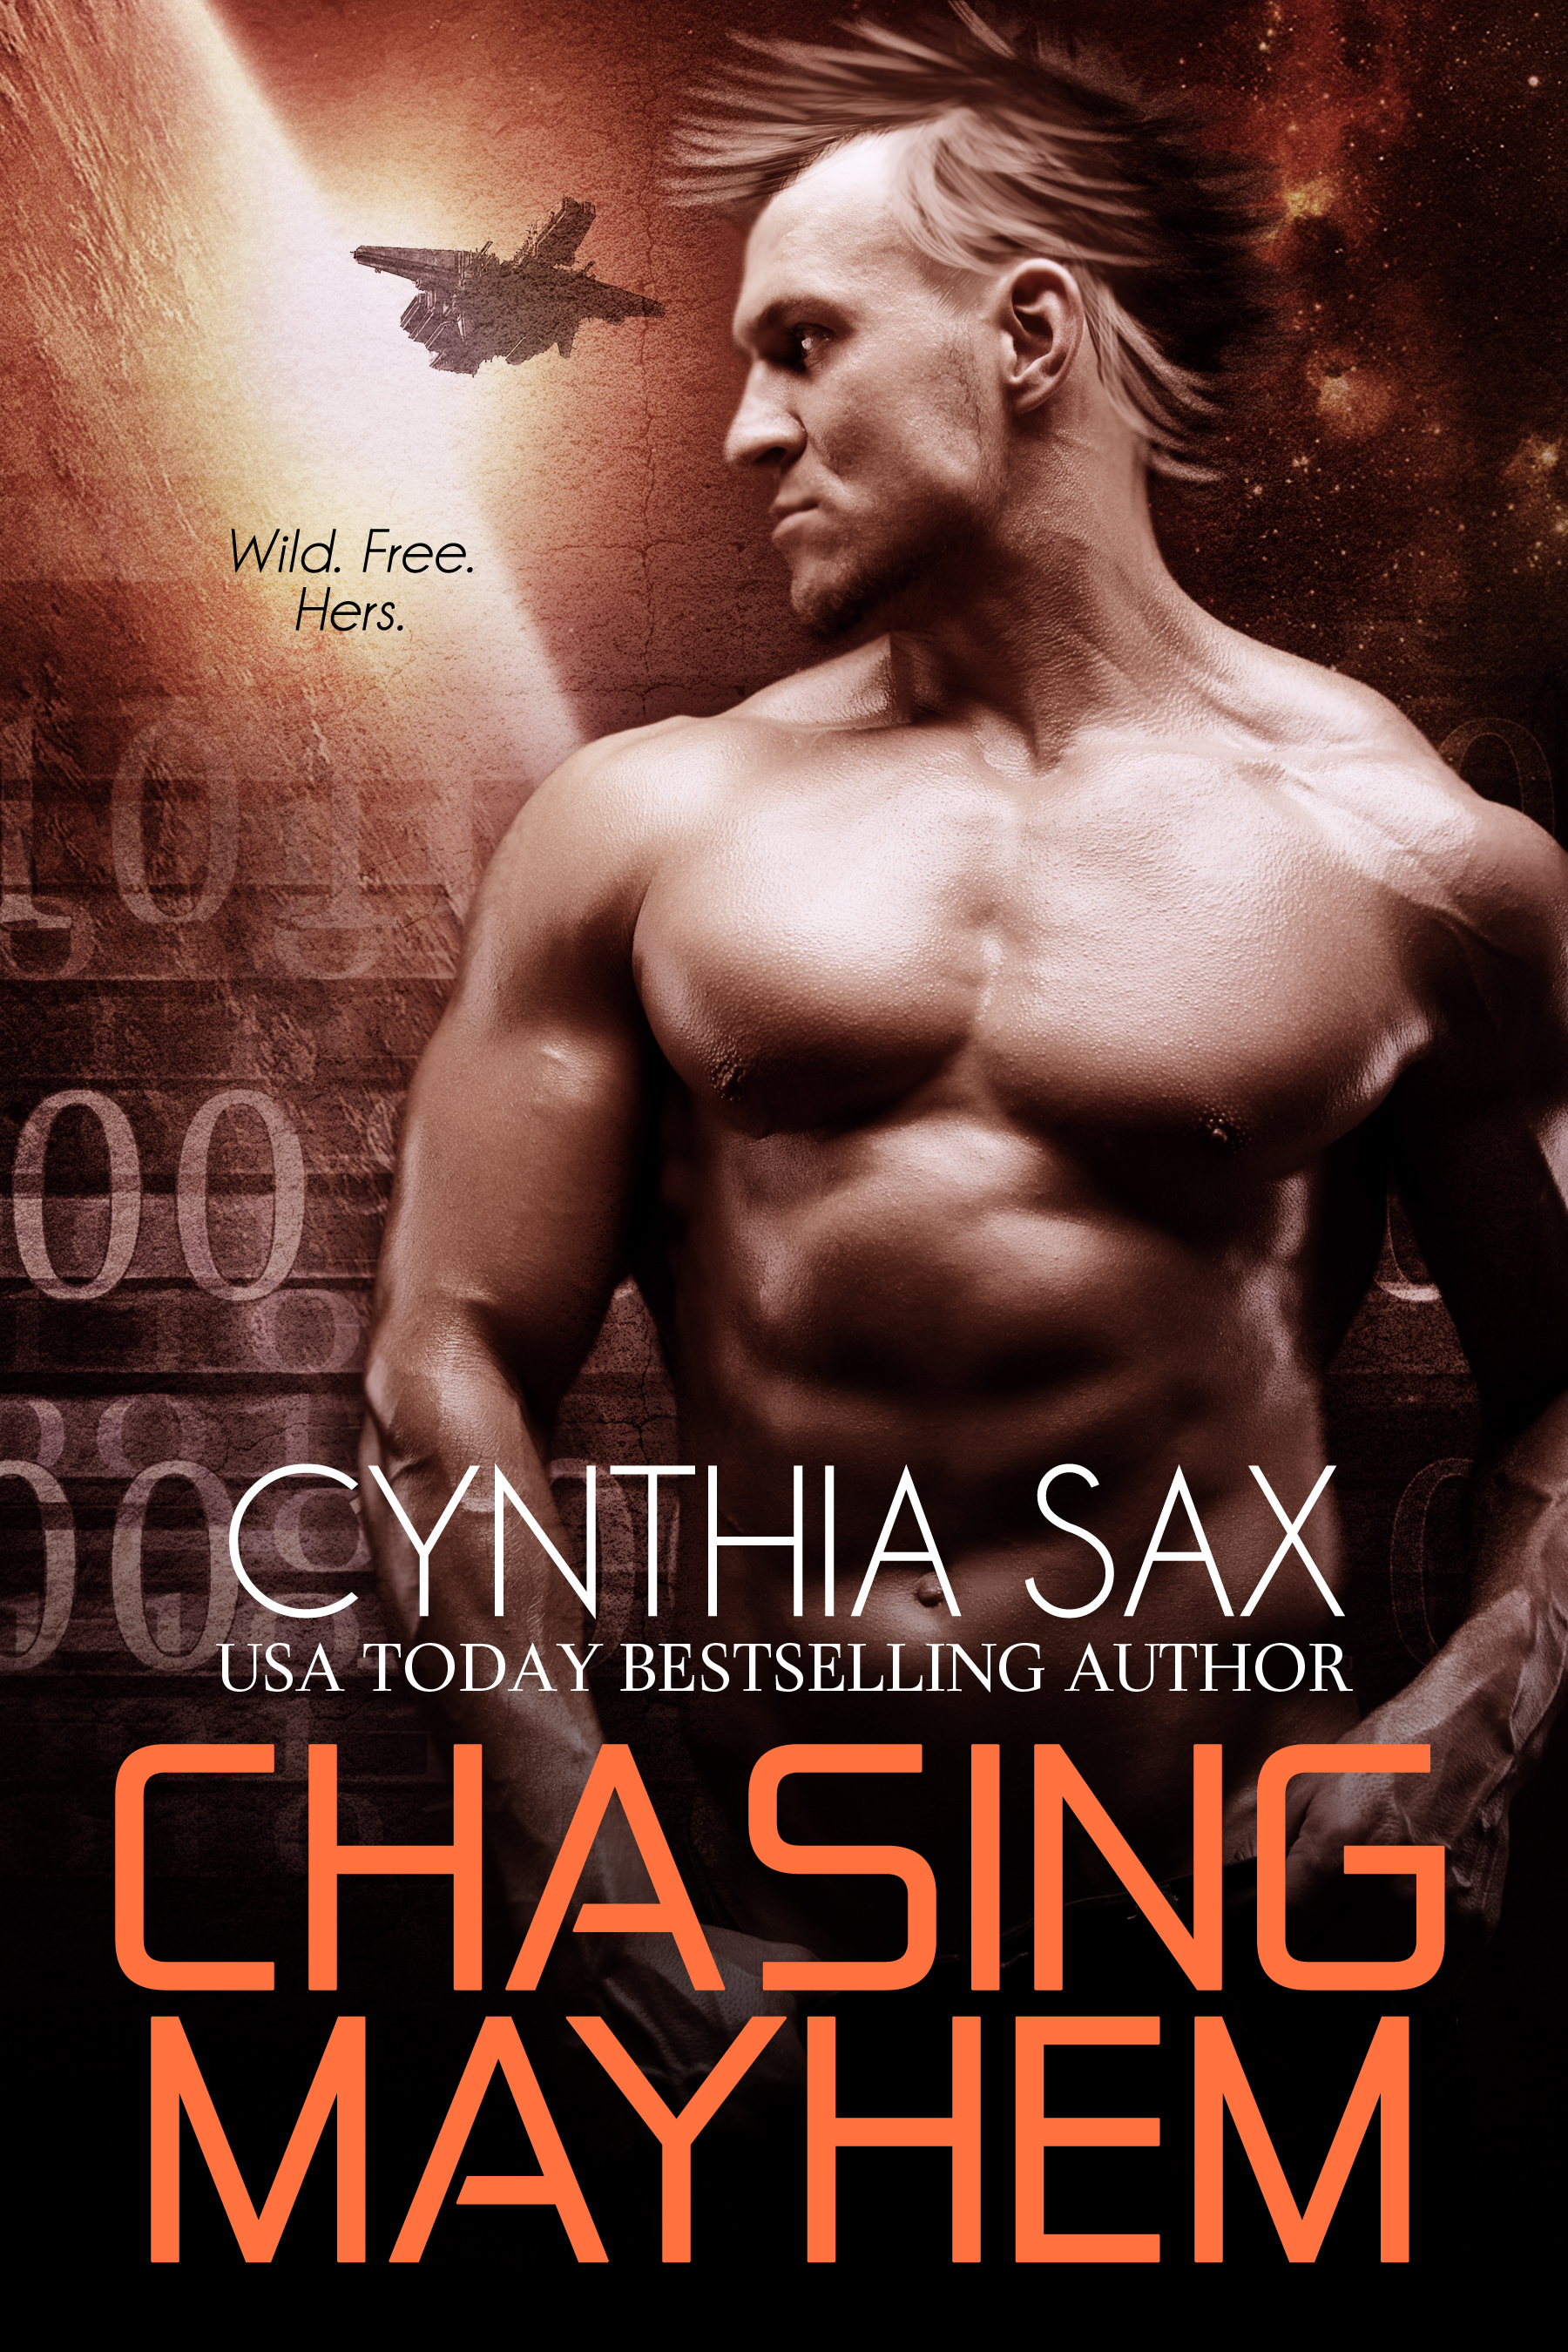 Chasing Mayhem from Cynthia Sax